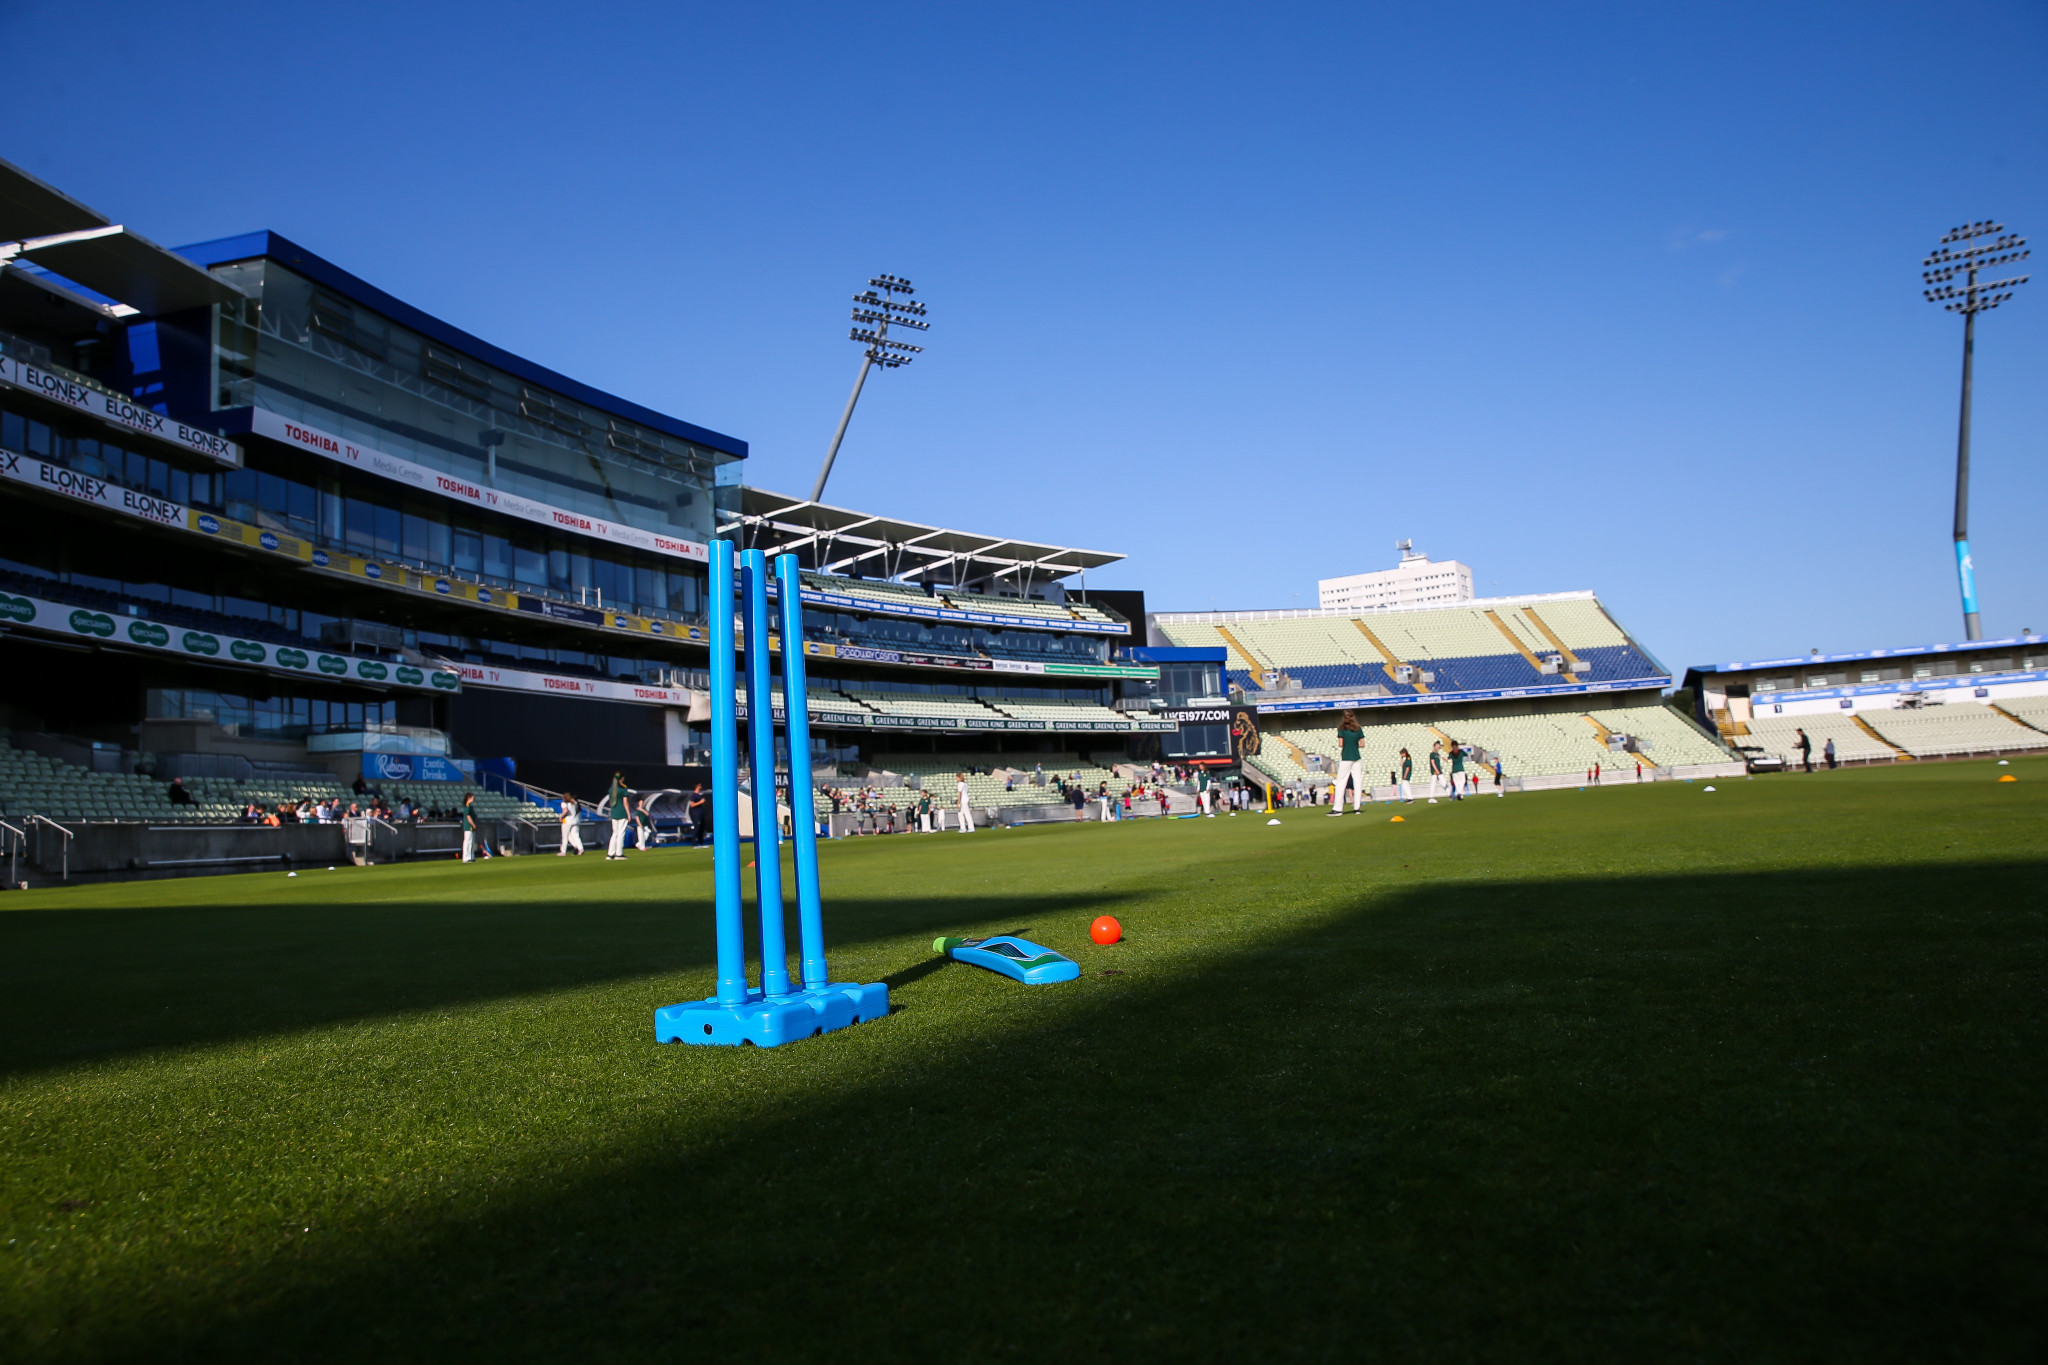 Women's T20 cricket at Edgbaston is set to be a highlight of the Birmingham 2022 sport programme ©Getty Images